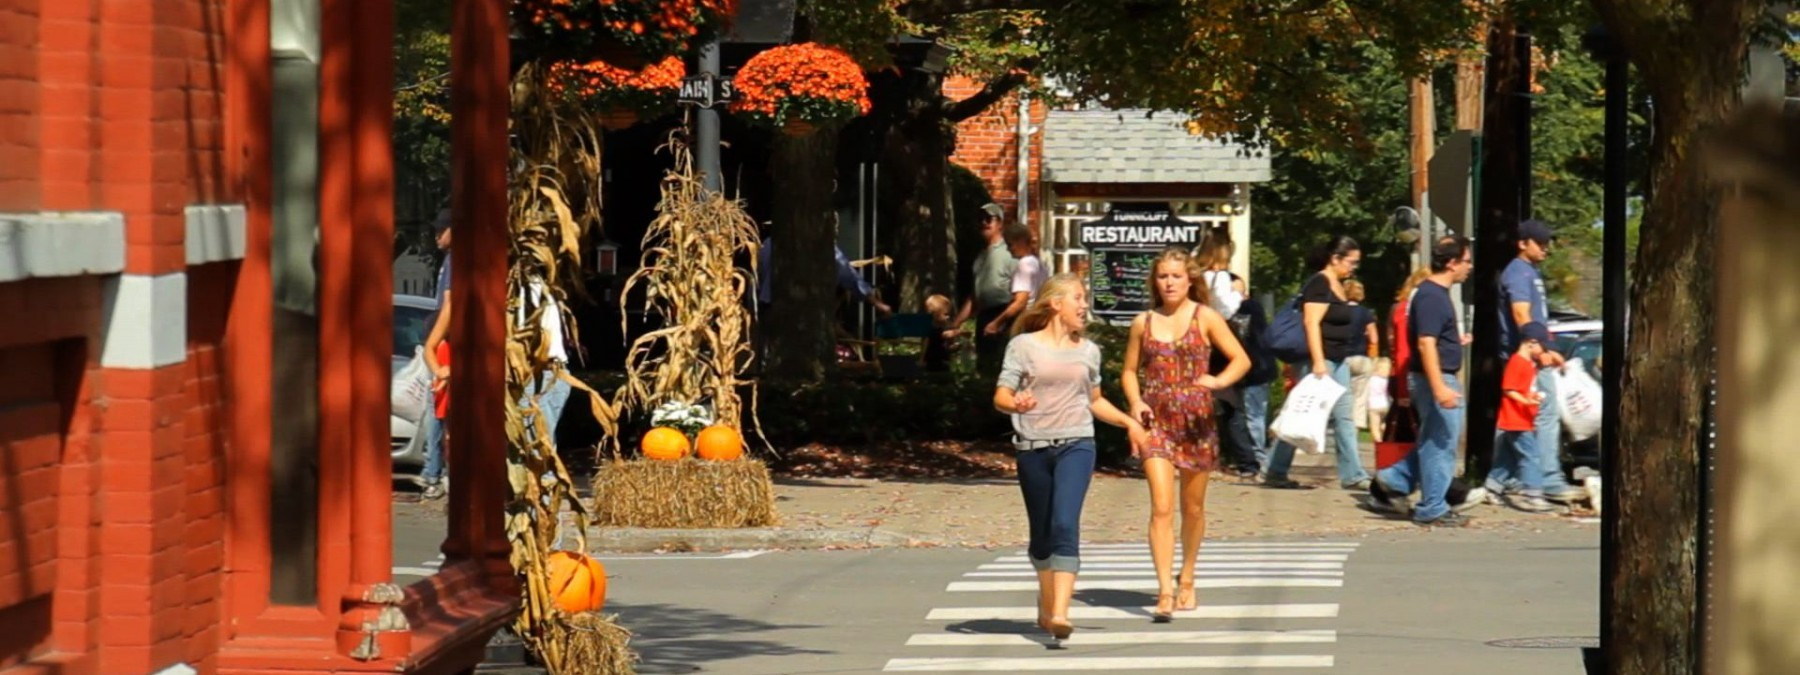 Fall In Love with Cooperstown